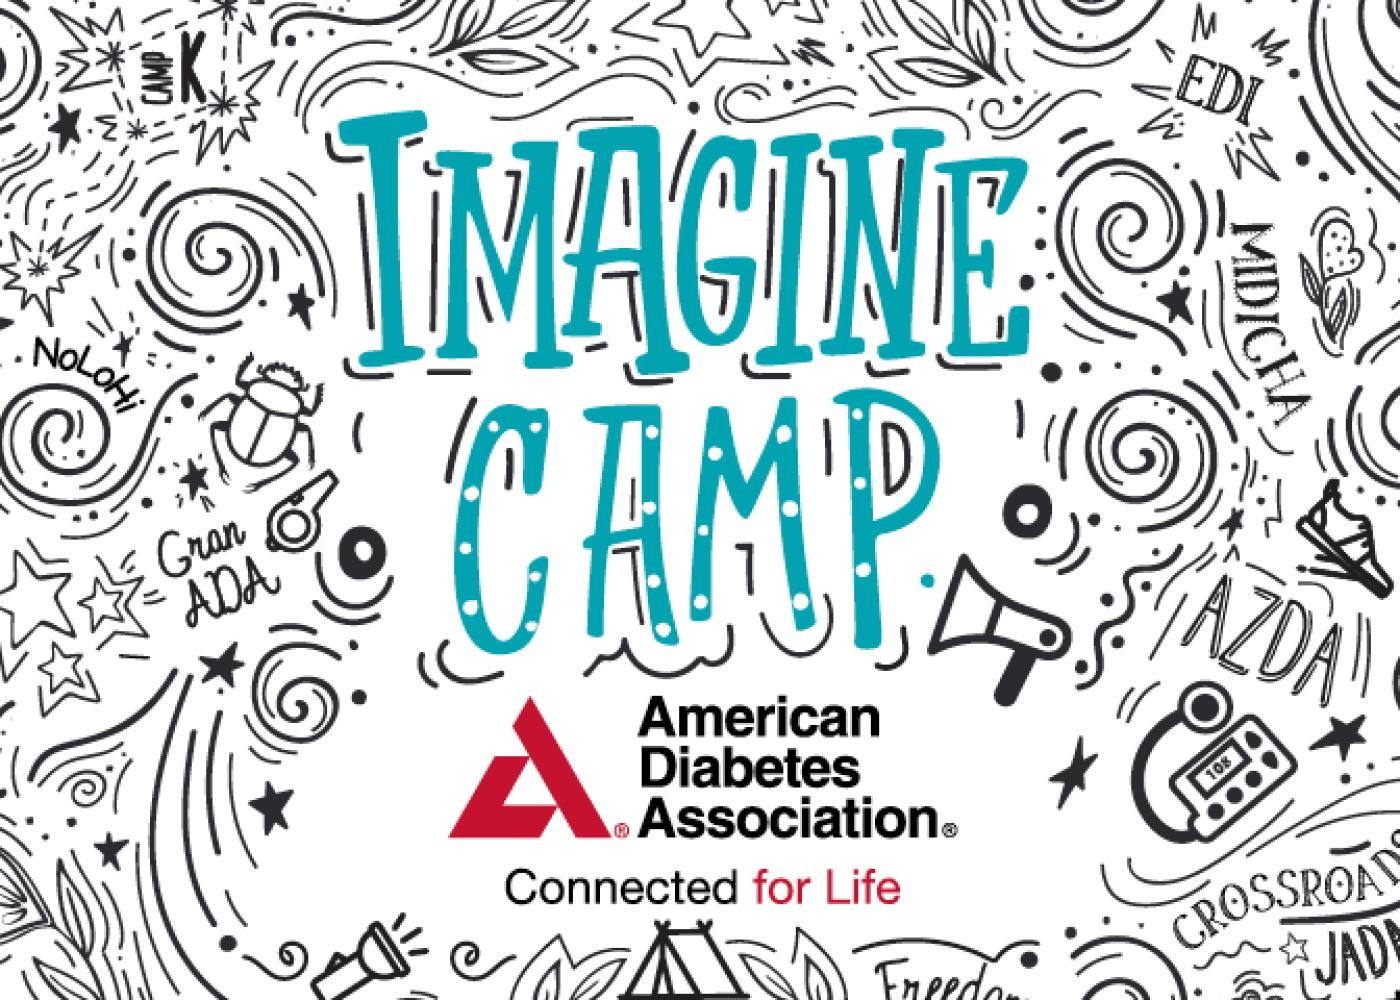 Imagine Camp written in green surrounded by black and white doodles on white card